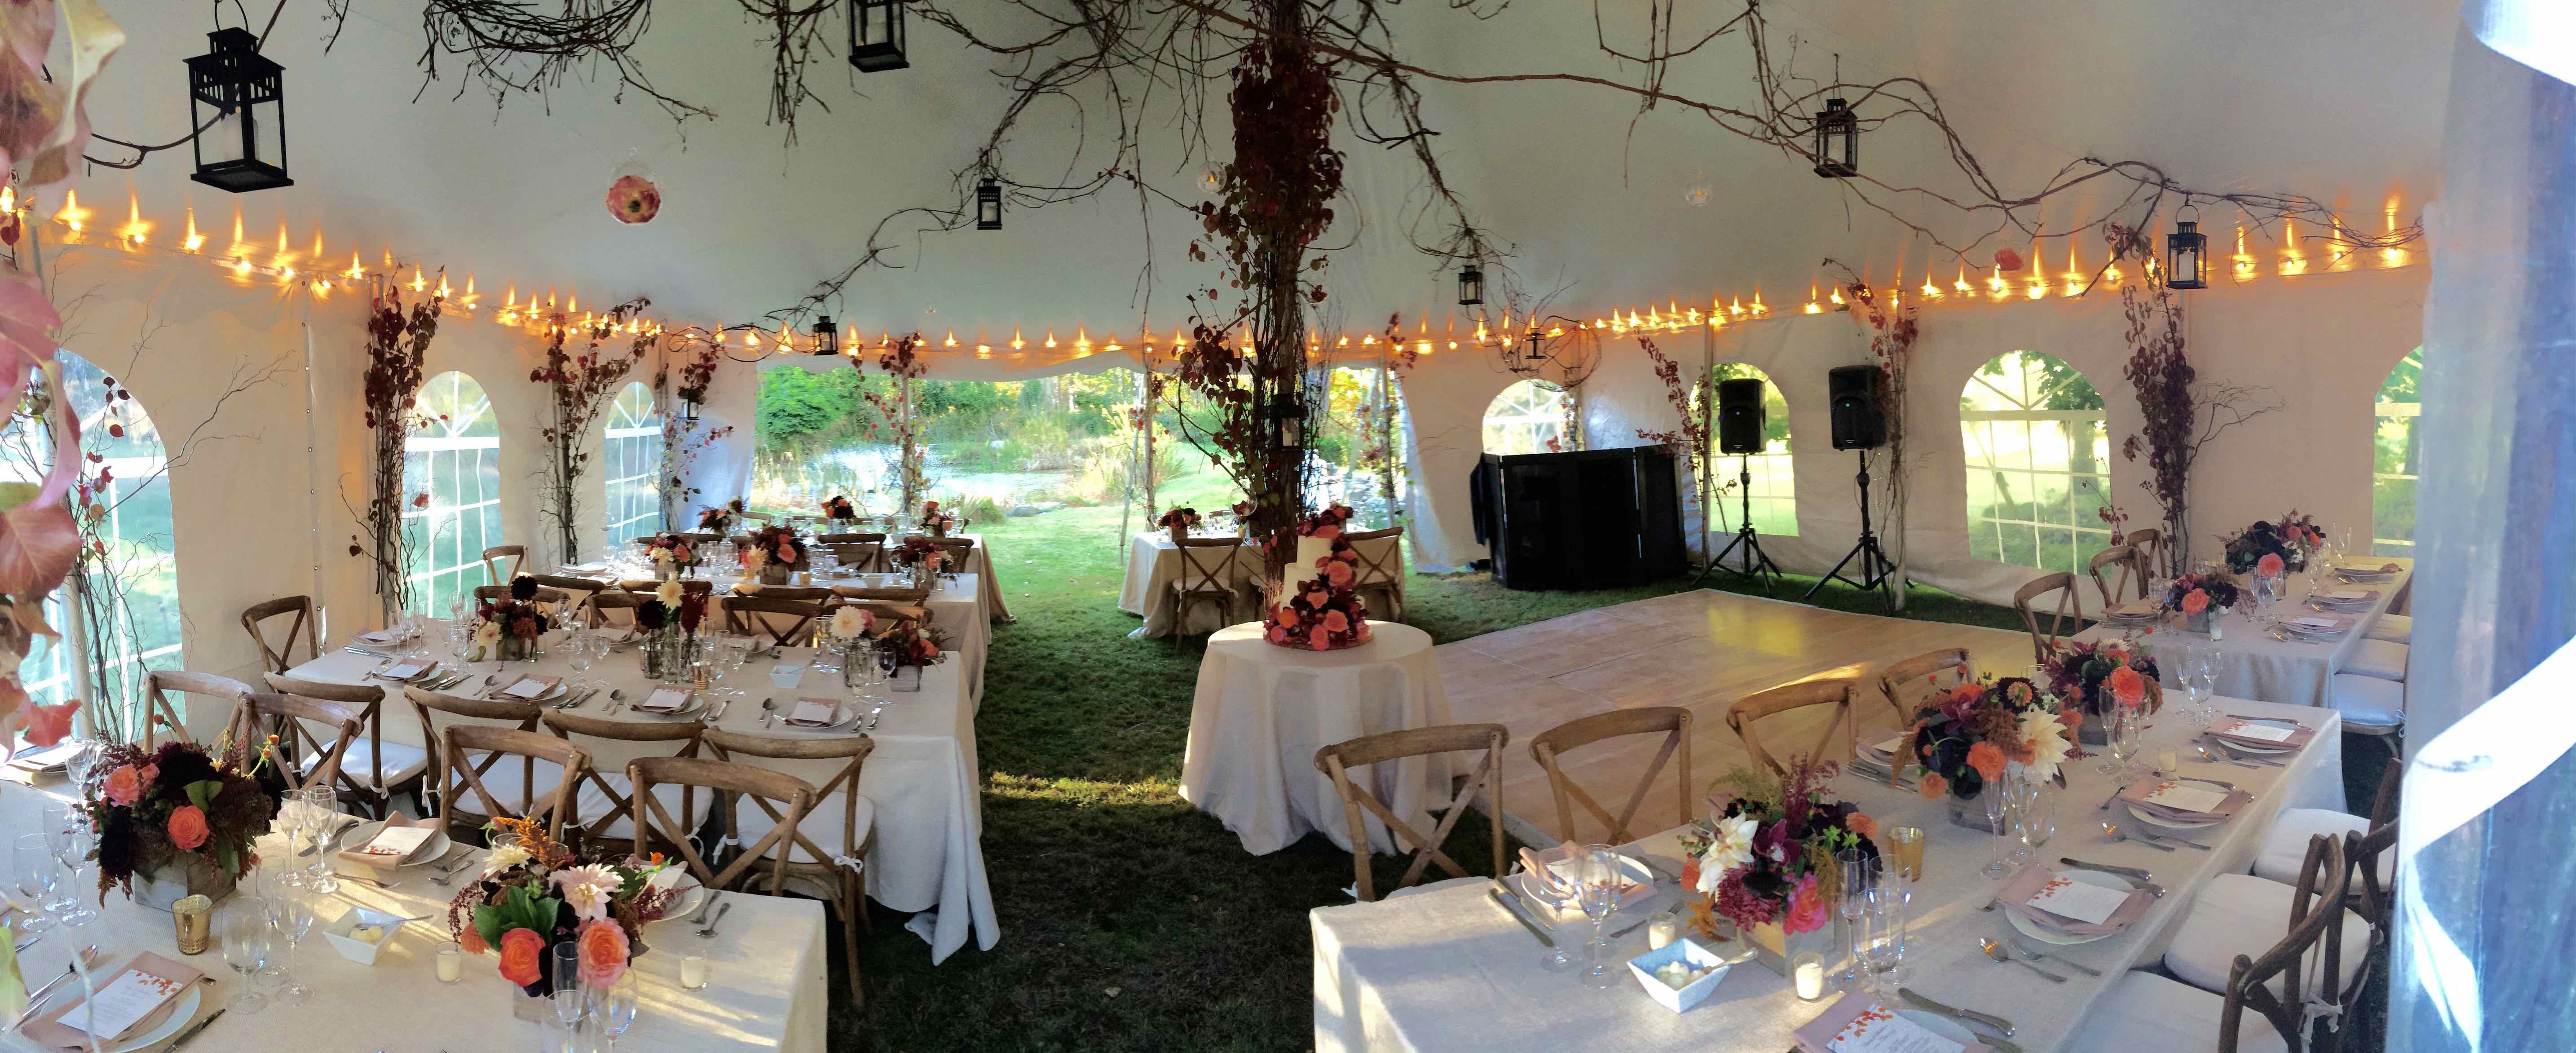 Fall Wedding Tent. Bring Outside into the tent